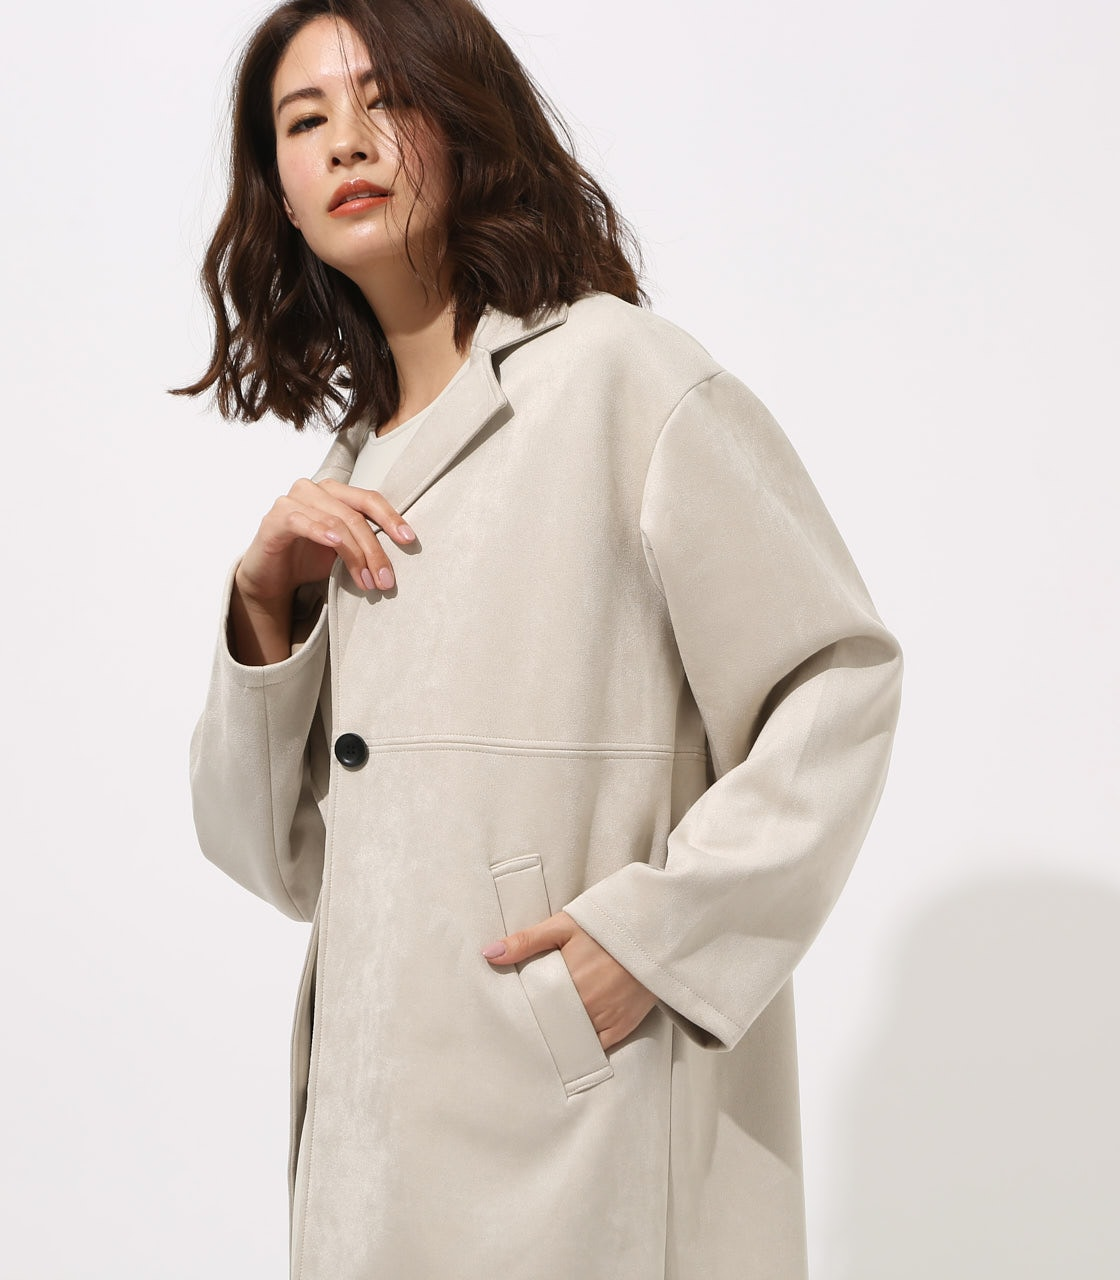 FAKE SUEDE CHESTER COAT 詳細画像 L/GRY 2